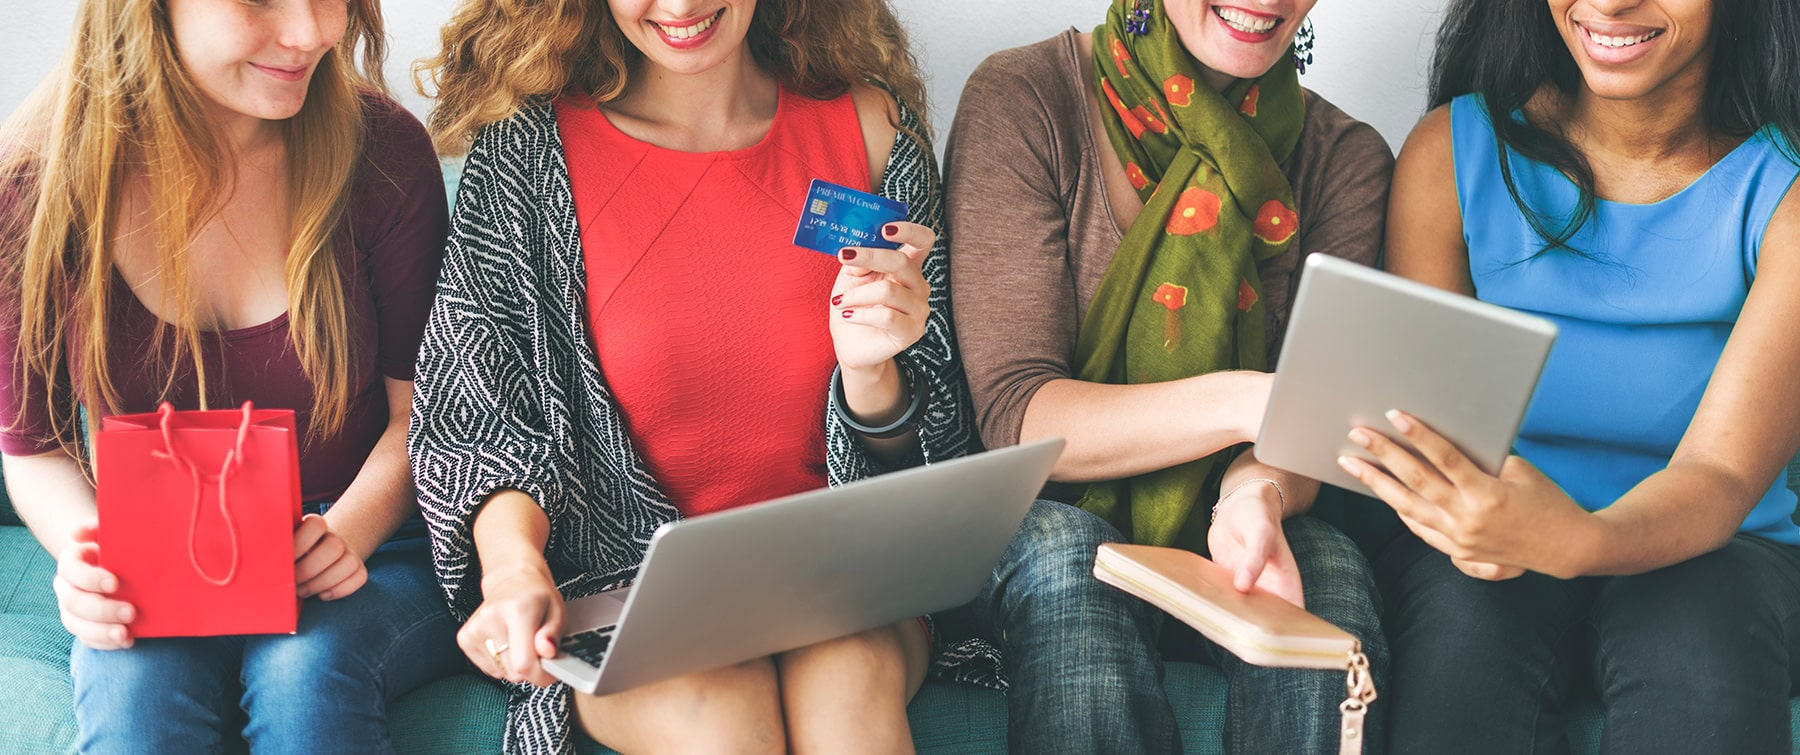 Women Shopping online using e-commerce